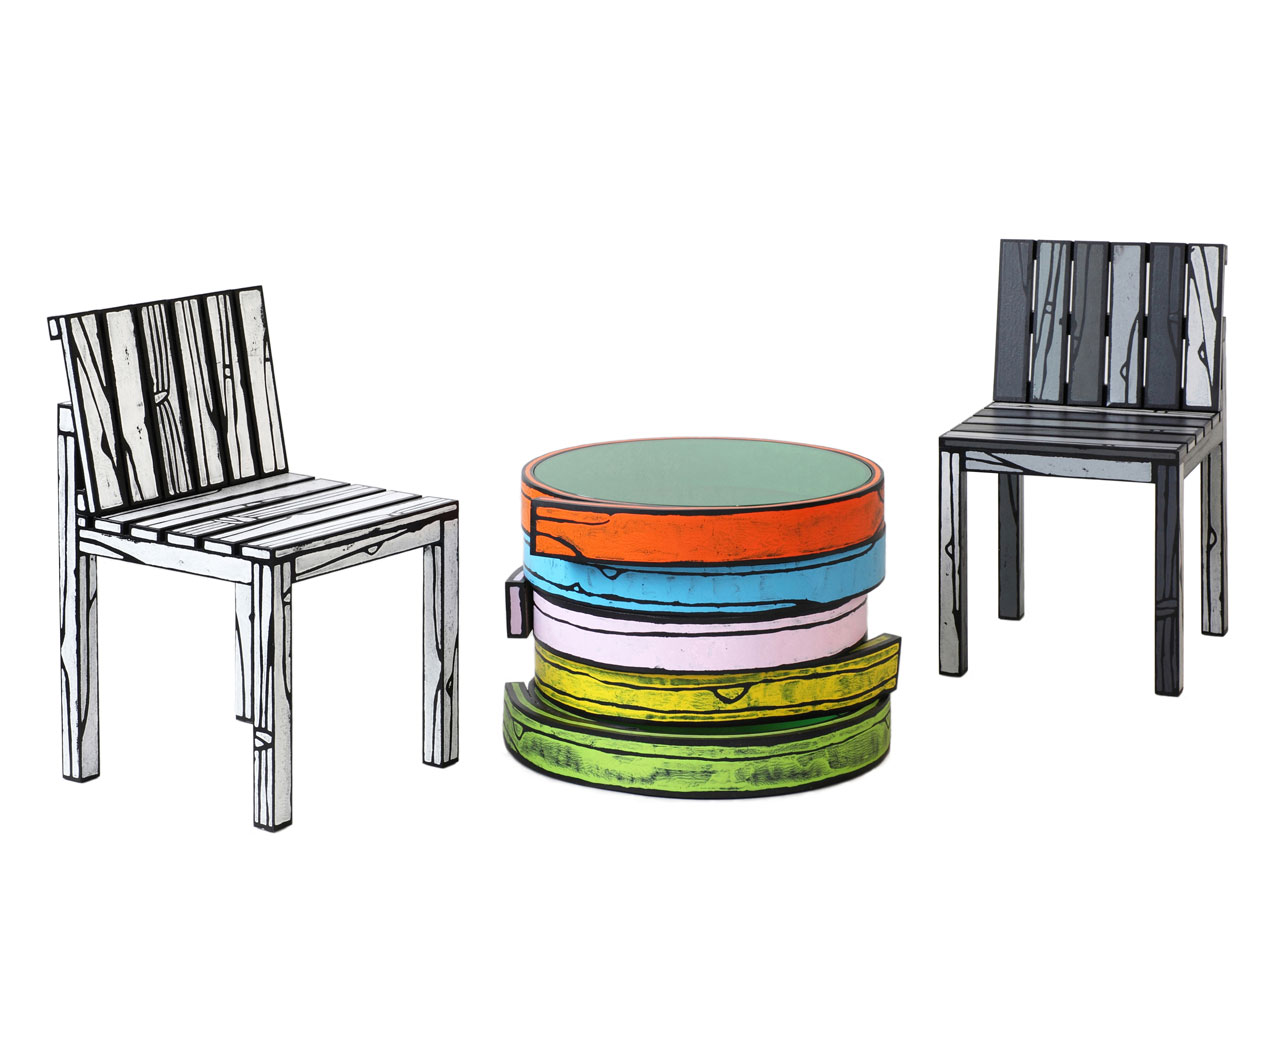 colorful furniture. Wrong Woods Do It Again With More Colorful Wood Grain Furniture